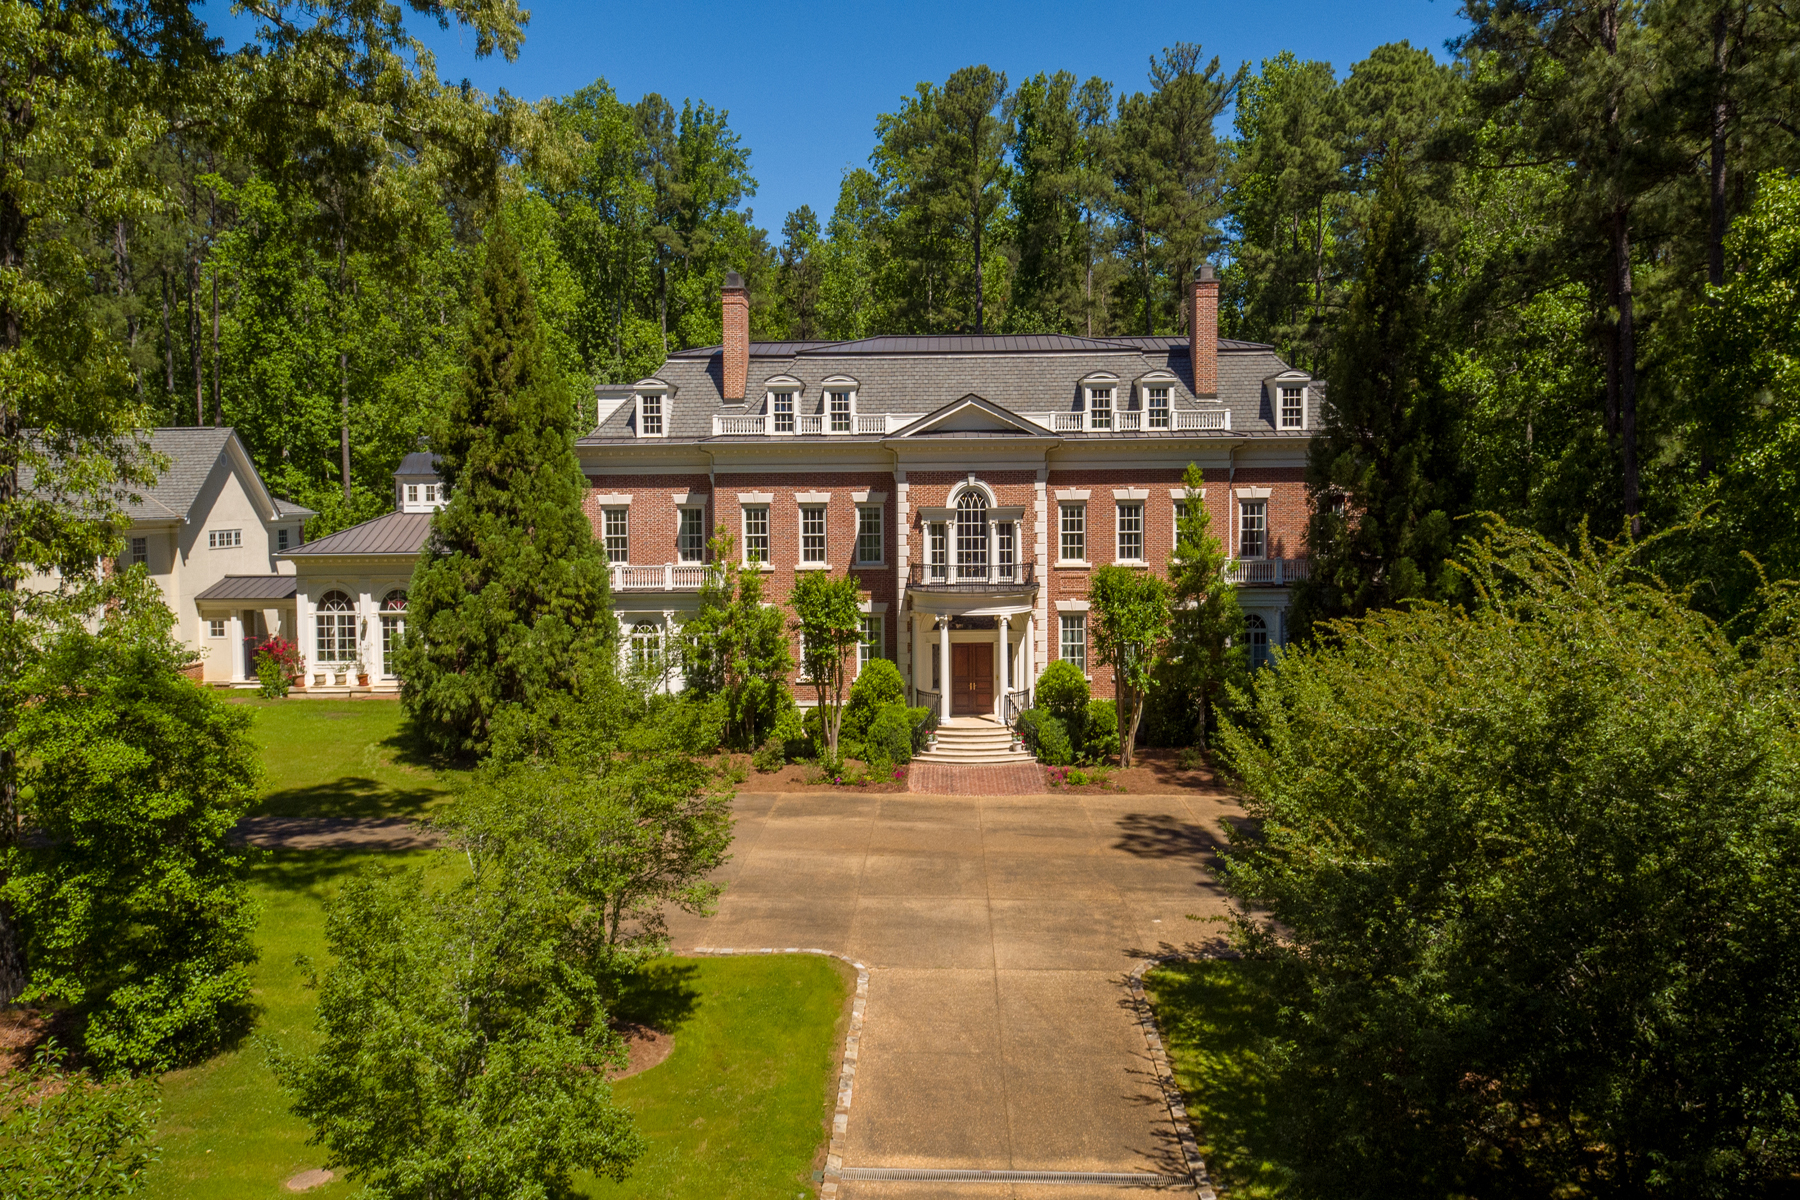 一戸建て のために 売買 アット Exquisite Private Estate, Architectural Gem In Peachtree City 321 Loring Lane Peachtree City, ジョージア 30269 アメリカ合衆国